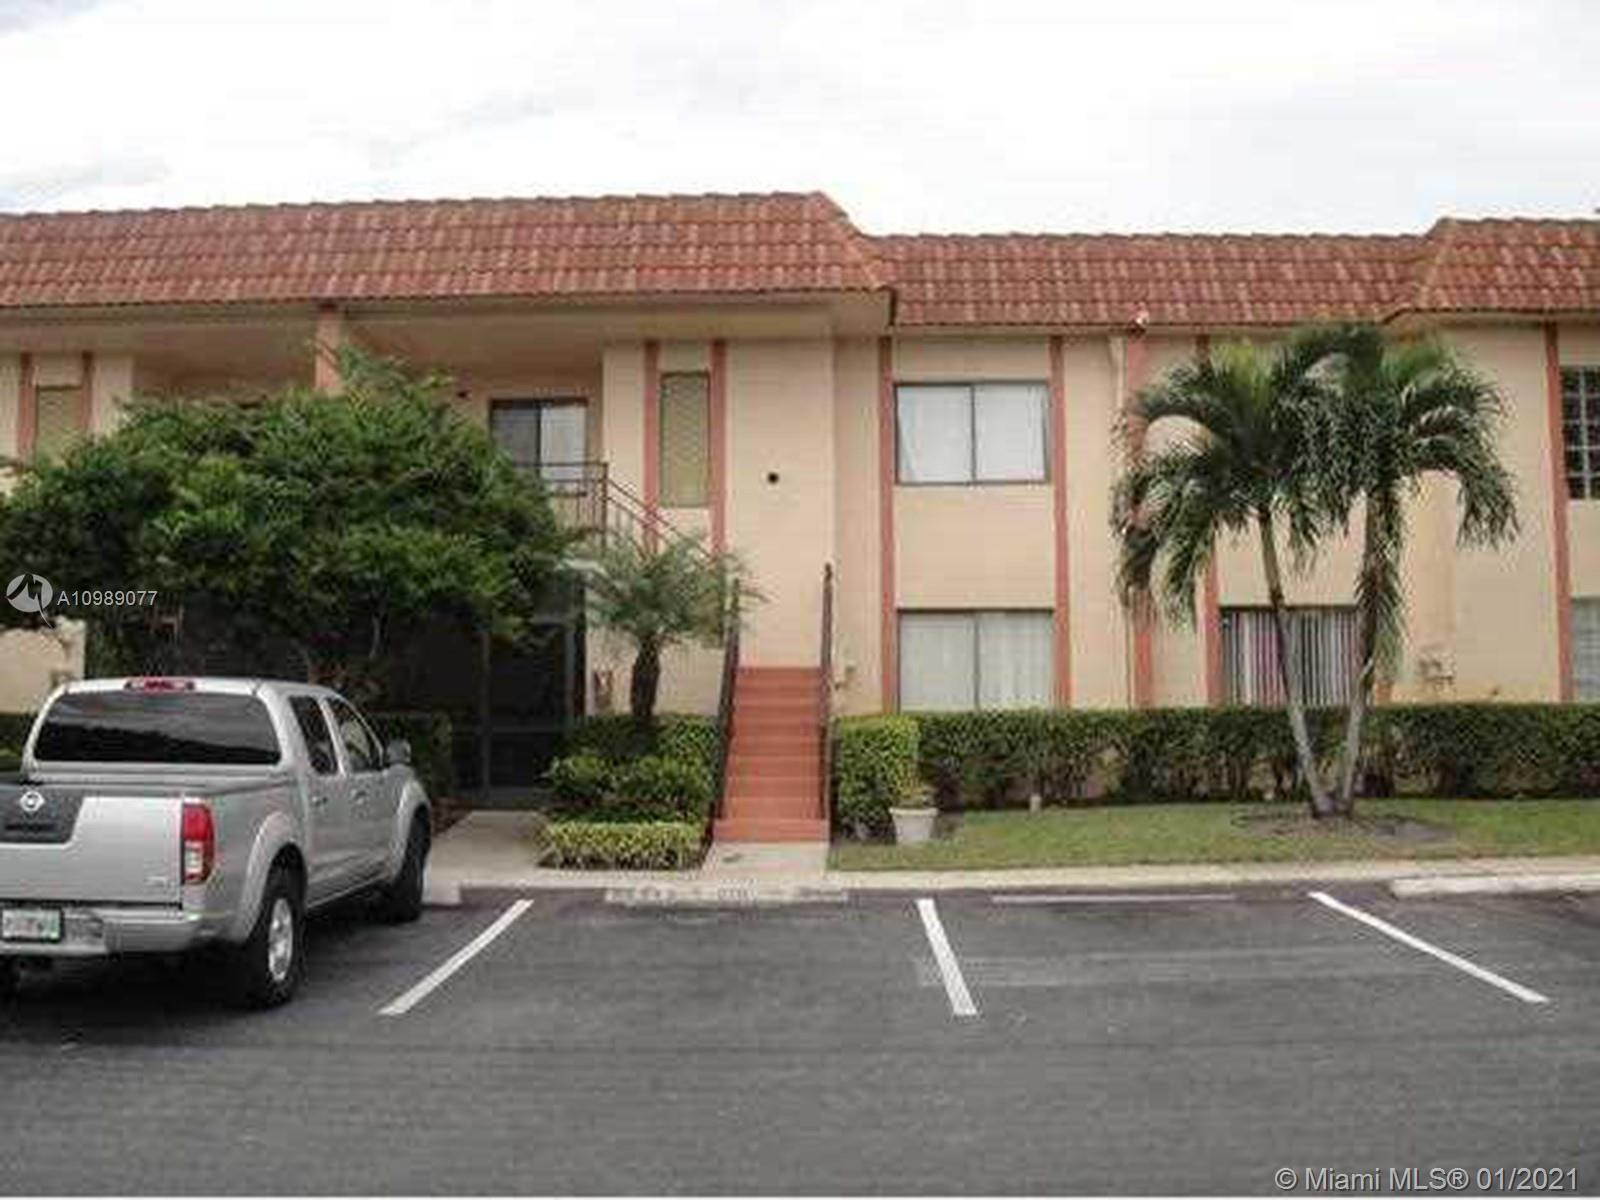 This BEAUTIFUL 2 bed 2 bath first floor apartment has an updated kitchen with granite counter tops, laminate flooring in the living room and bedrooms. The bathrooms have been remodeled. Two storage closets and full garden views. Bonaventure Town Center membership required with full access to amenities like gym, tennis, pool, bowling alley, racket, indoor basketball court and other features. Easy access to the highway.